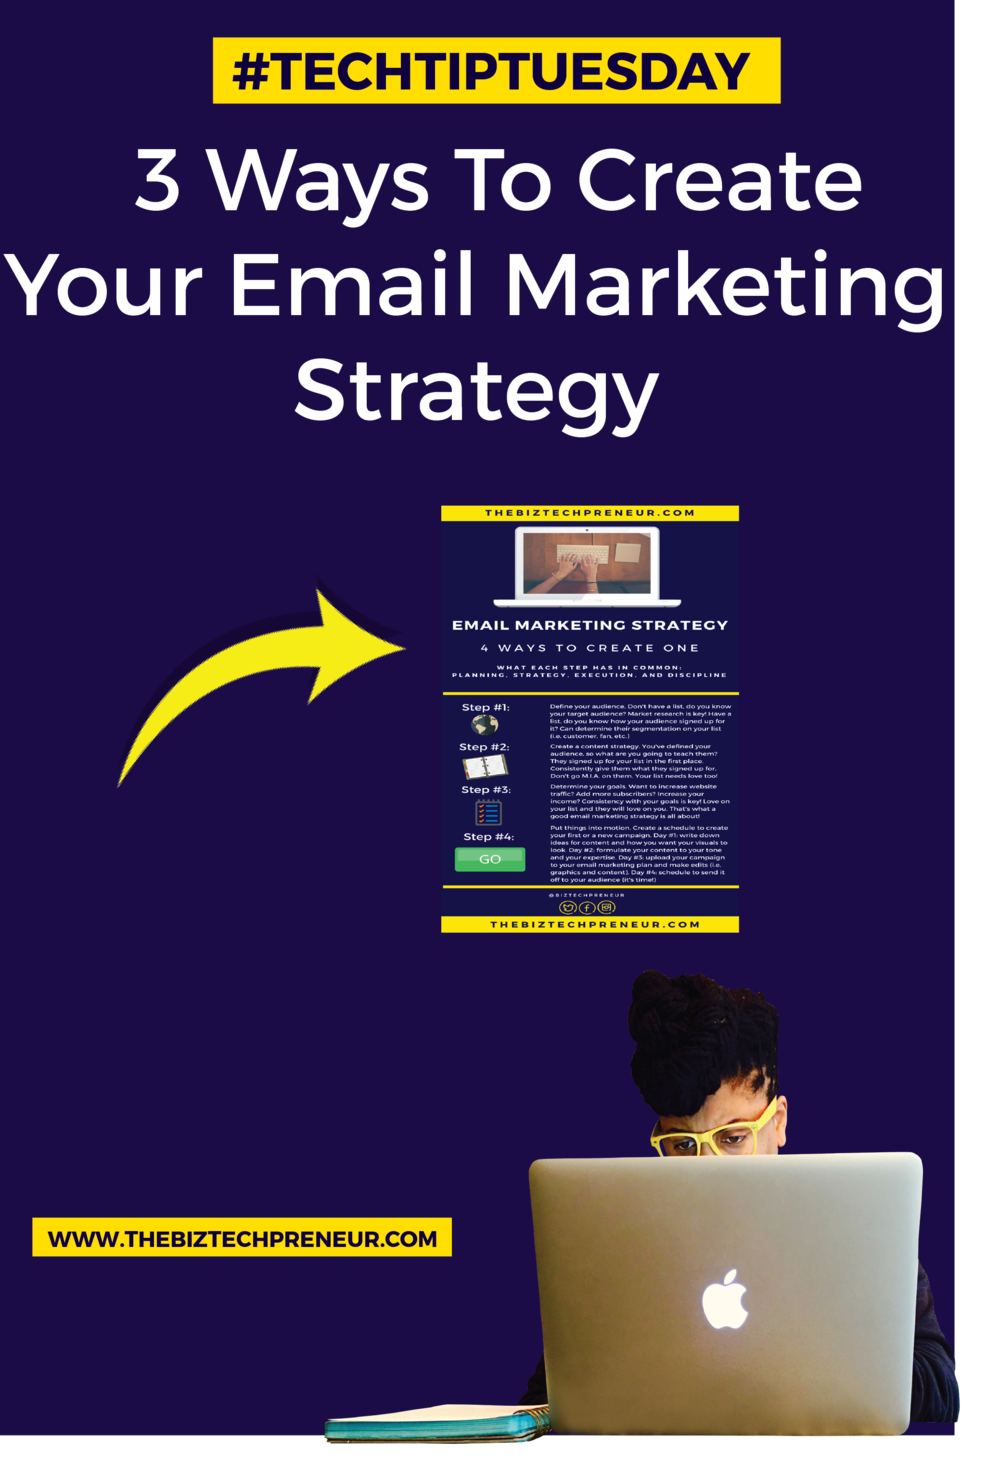 3 Ways To Create Your Email Marketing Strategy. It's Not As Complex As You Think.